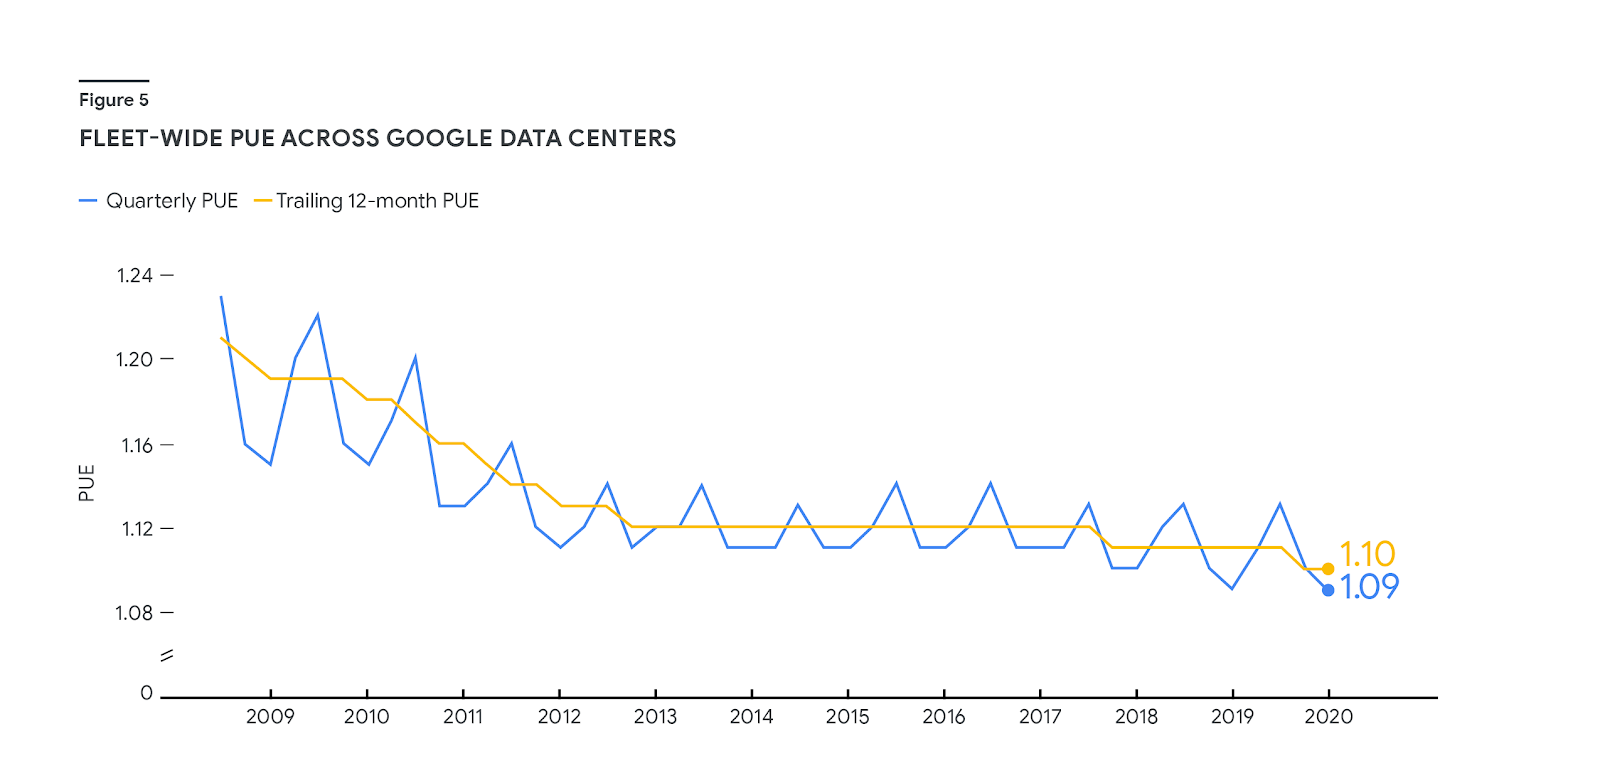 """A line graph titled """"Average PUE for all data centers"""" shows the decrease in """"Quarterly PUE"""" and """"Trailing 12-month (TTM) PUE"""" between 2009 and 2020. The Y axis ranges from 0 to 1.24 PUE. The most recent value for both variables is 1.1 PUE in 2020."""